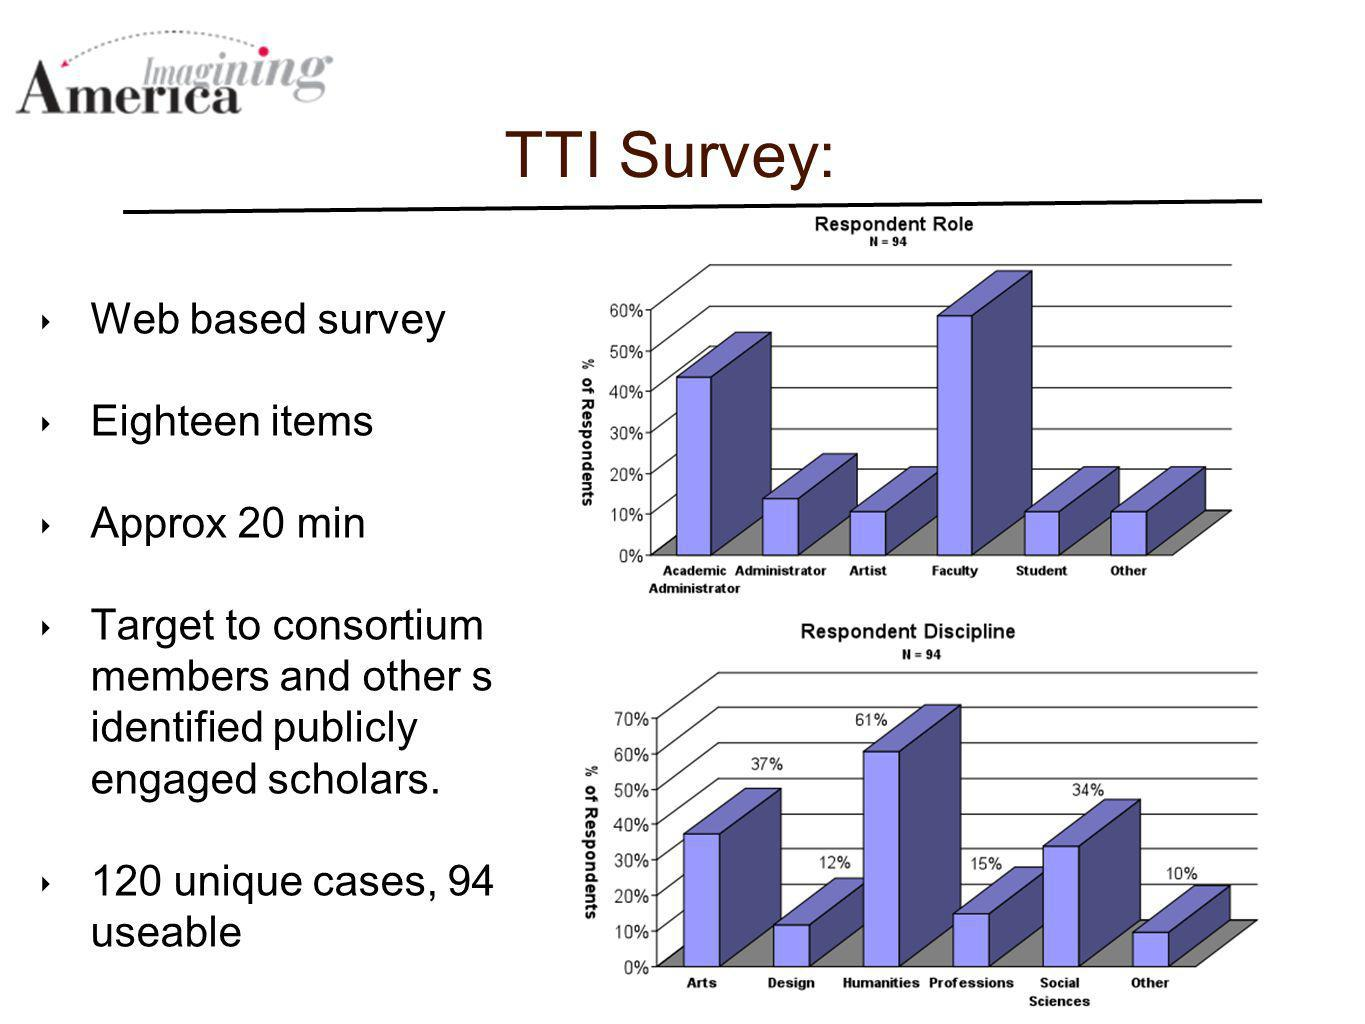 TTI Survey: Web based survey Eighteen items Approx 20 min Target to consortium members and other self identified publicly engaged scholars. 120 unique